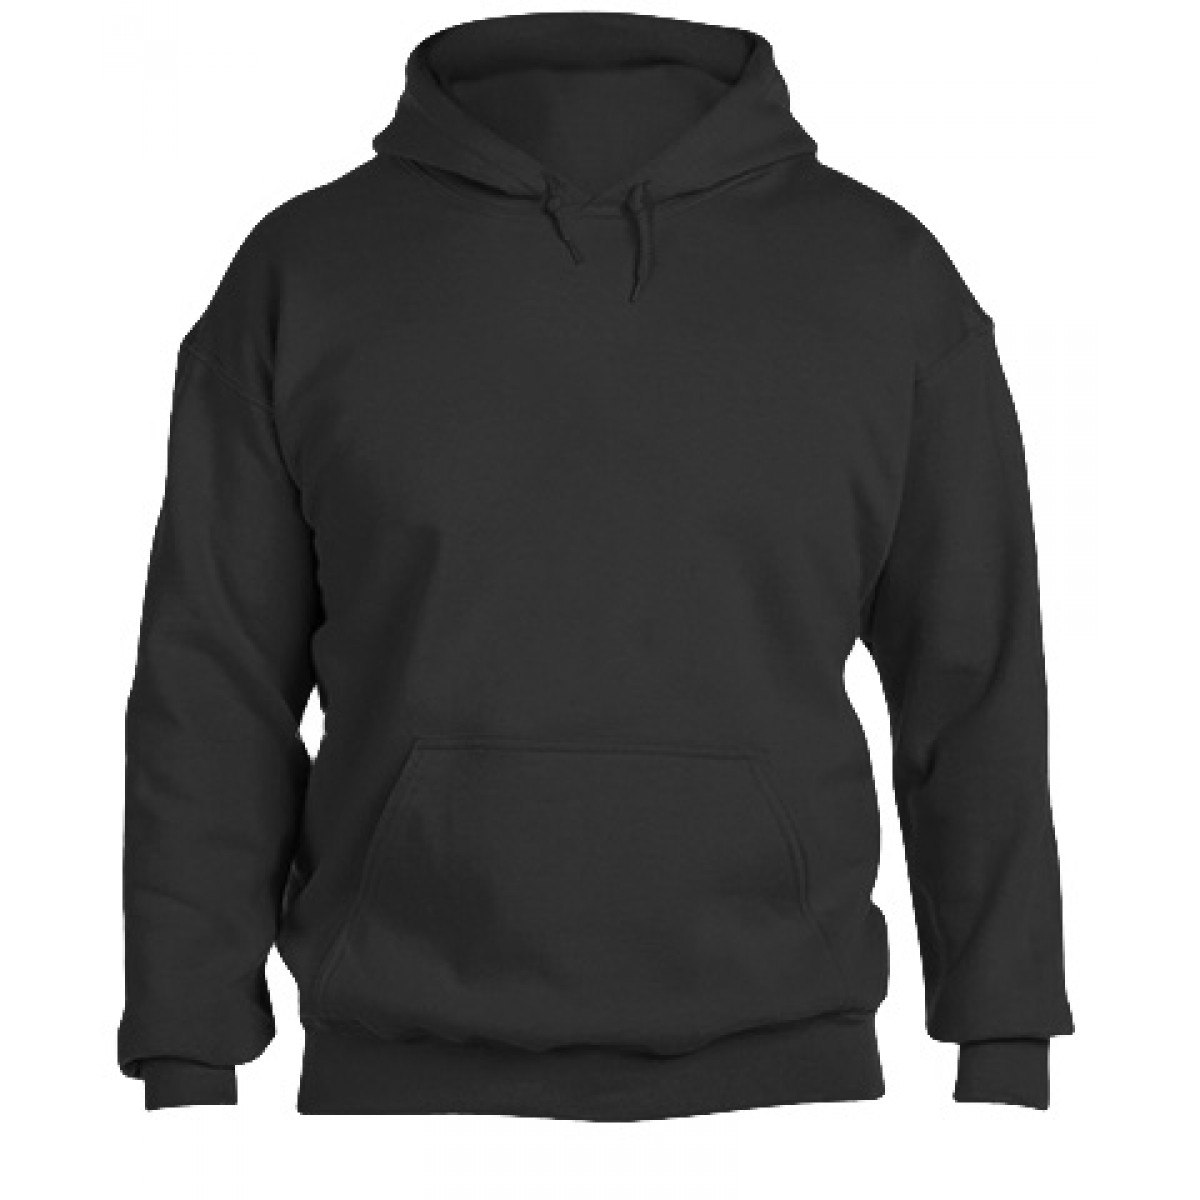 Hooded Sweatshirt 50/50 Heavy Blend-Black-3XL